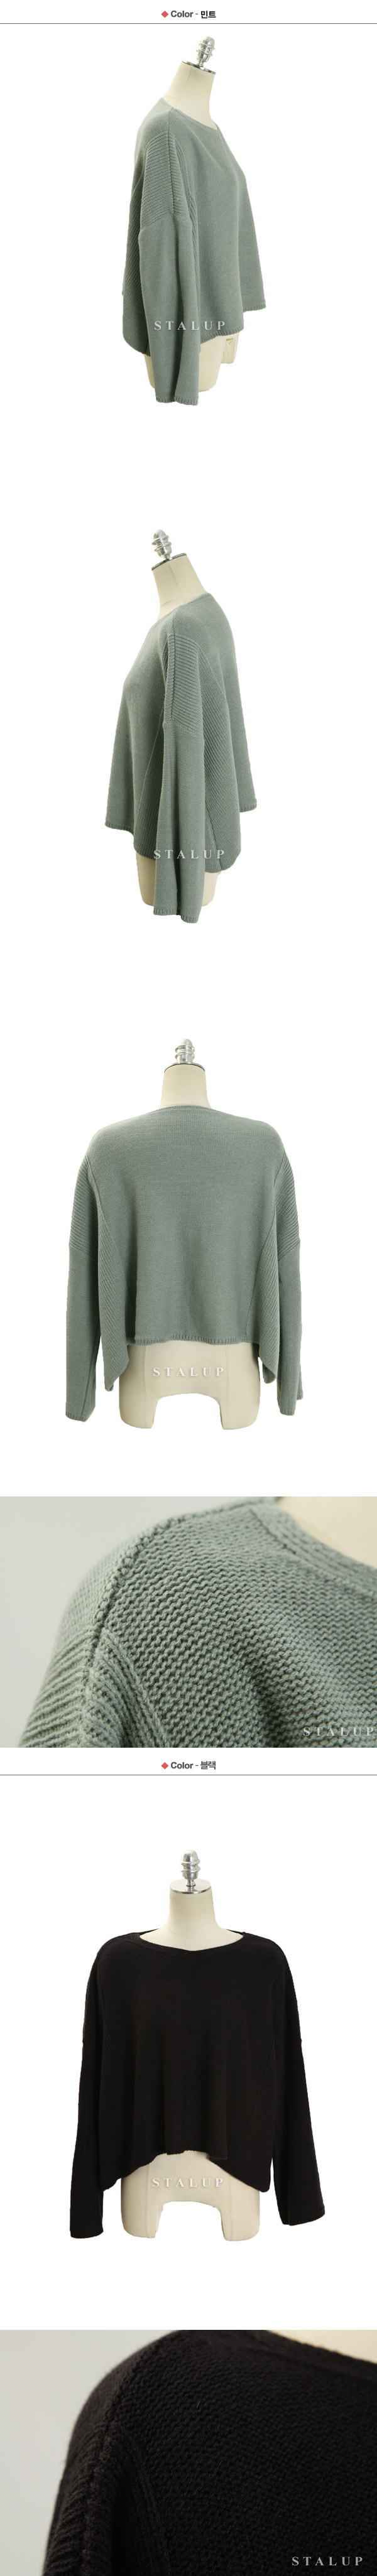 LAN natural knit